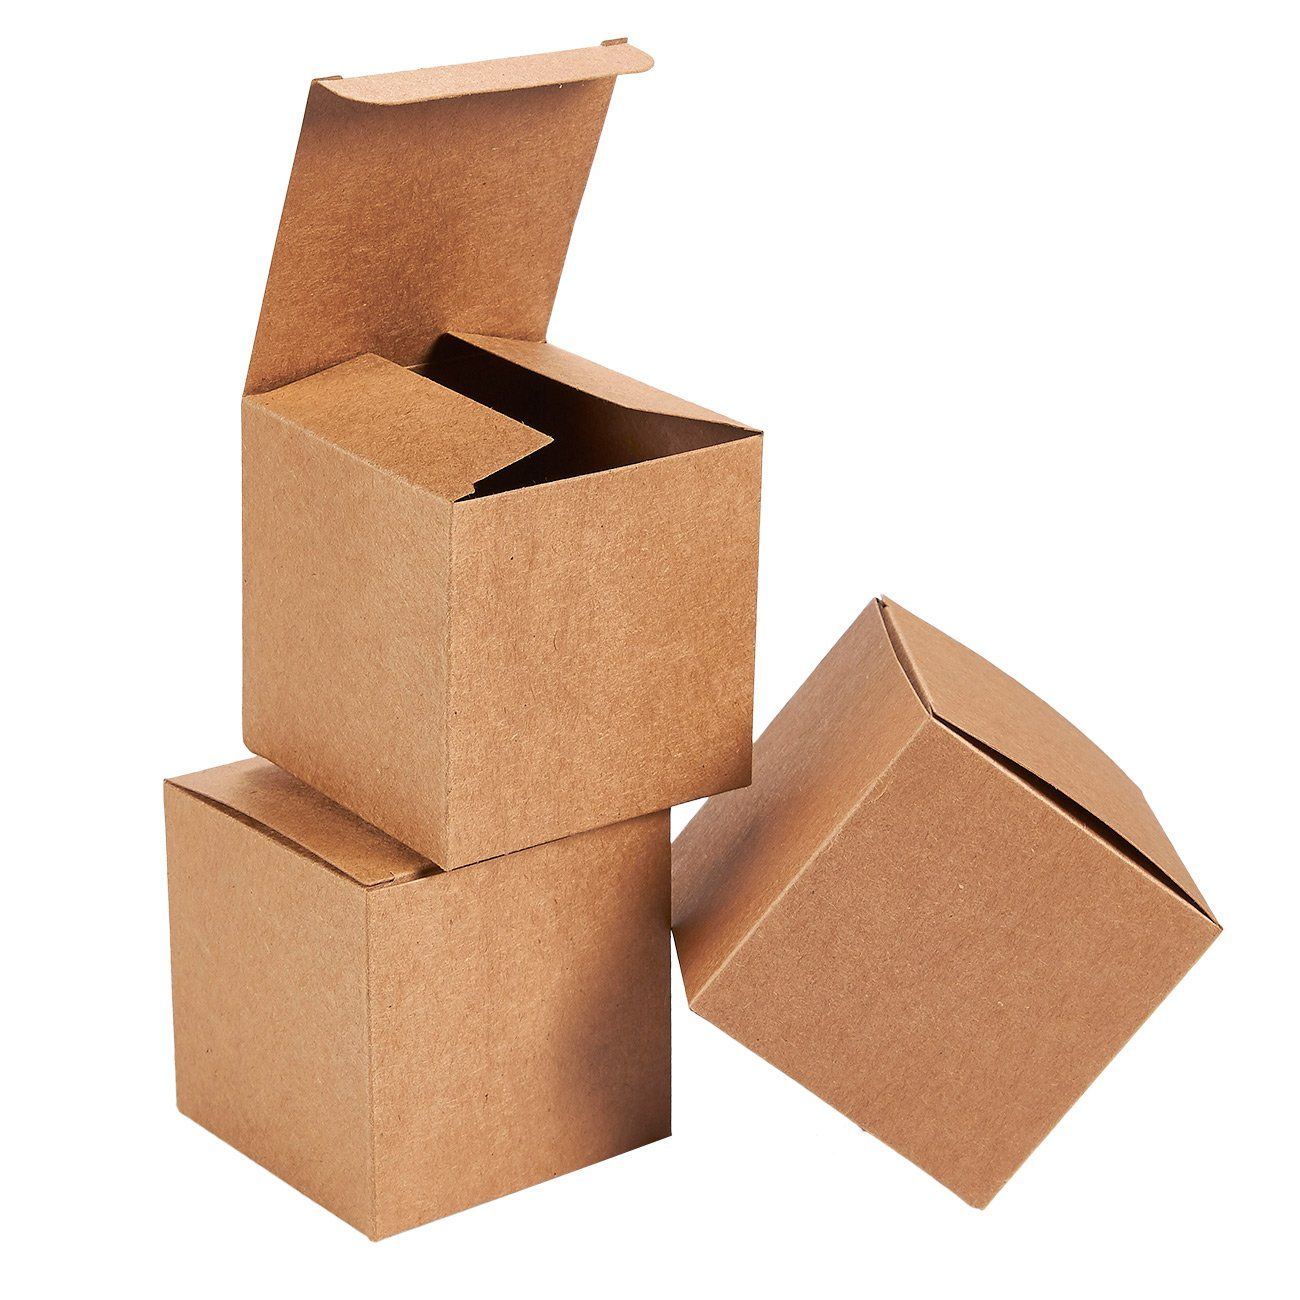 Kraft Gift Boxes 50 Pack Gift Wrapping Brown Paper Boxes With Lids Kraft Boxes For Party Supplies Cupc Gift Boxes With Lids Kraft Gift Boxes Paper Gift Box